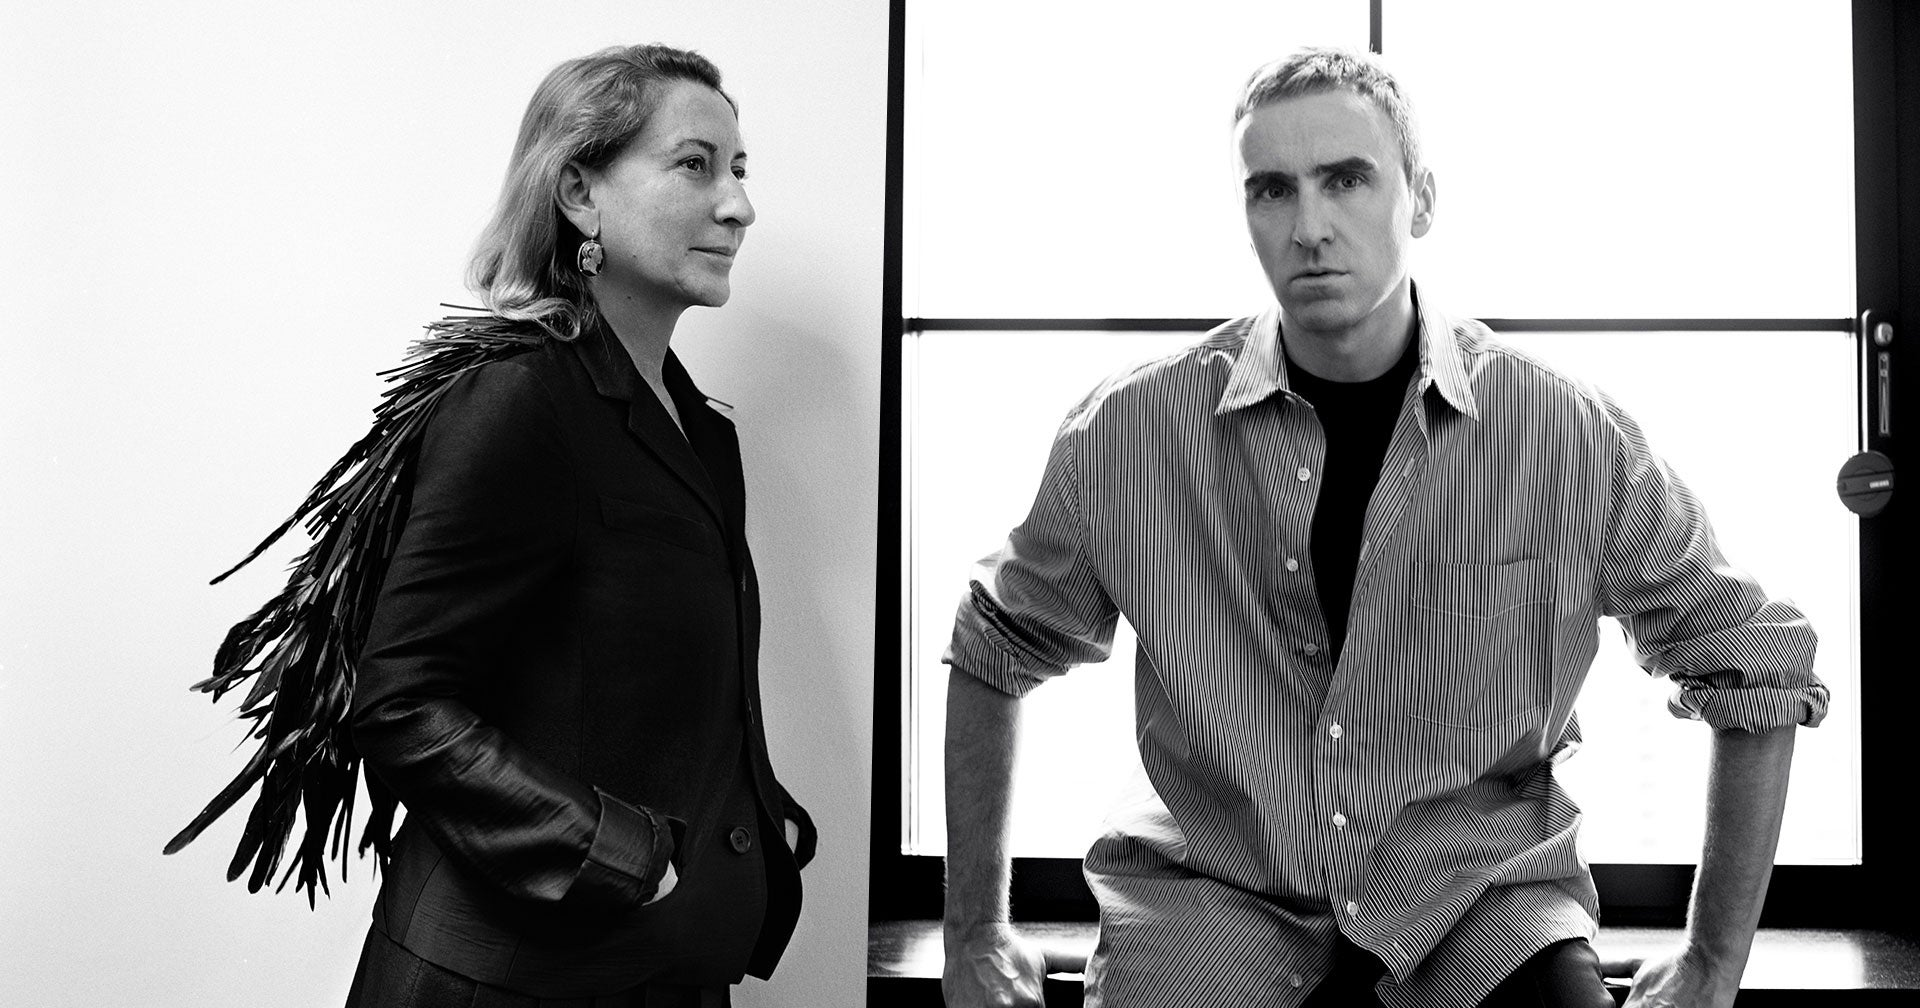 Can Two Master Fashion Designers Work Together Under One Label?